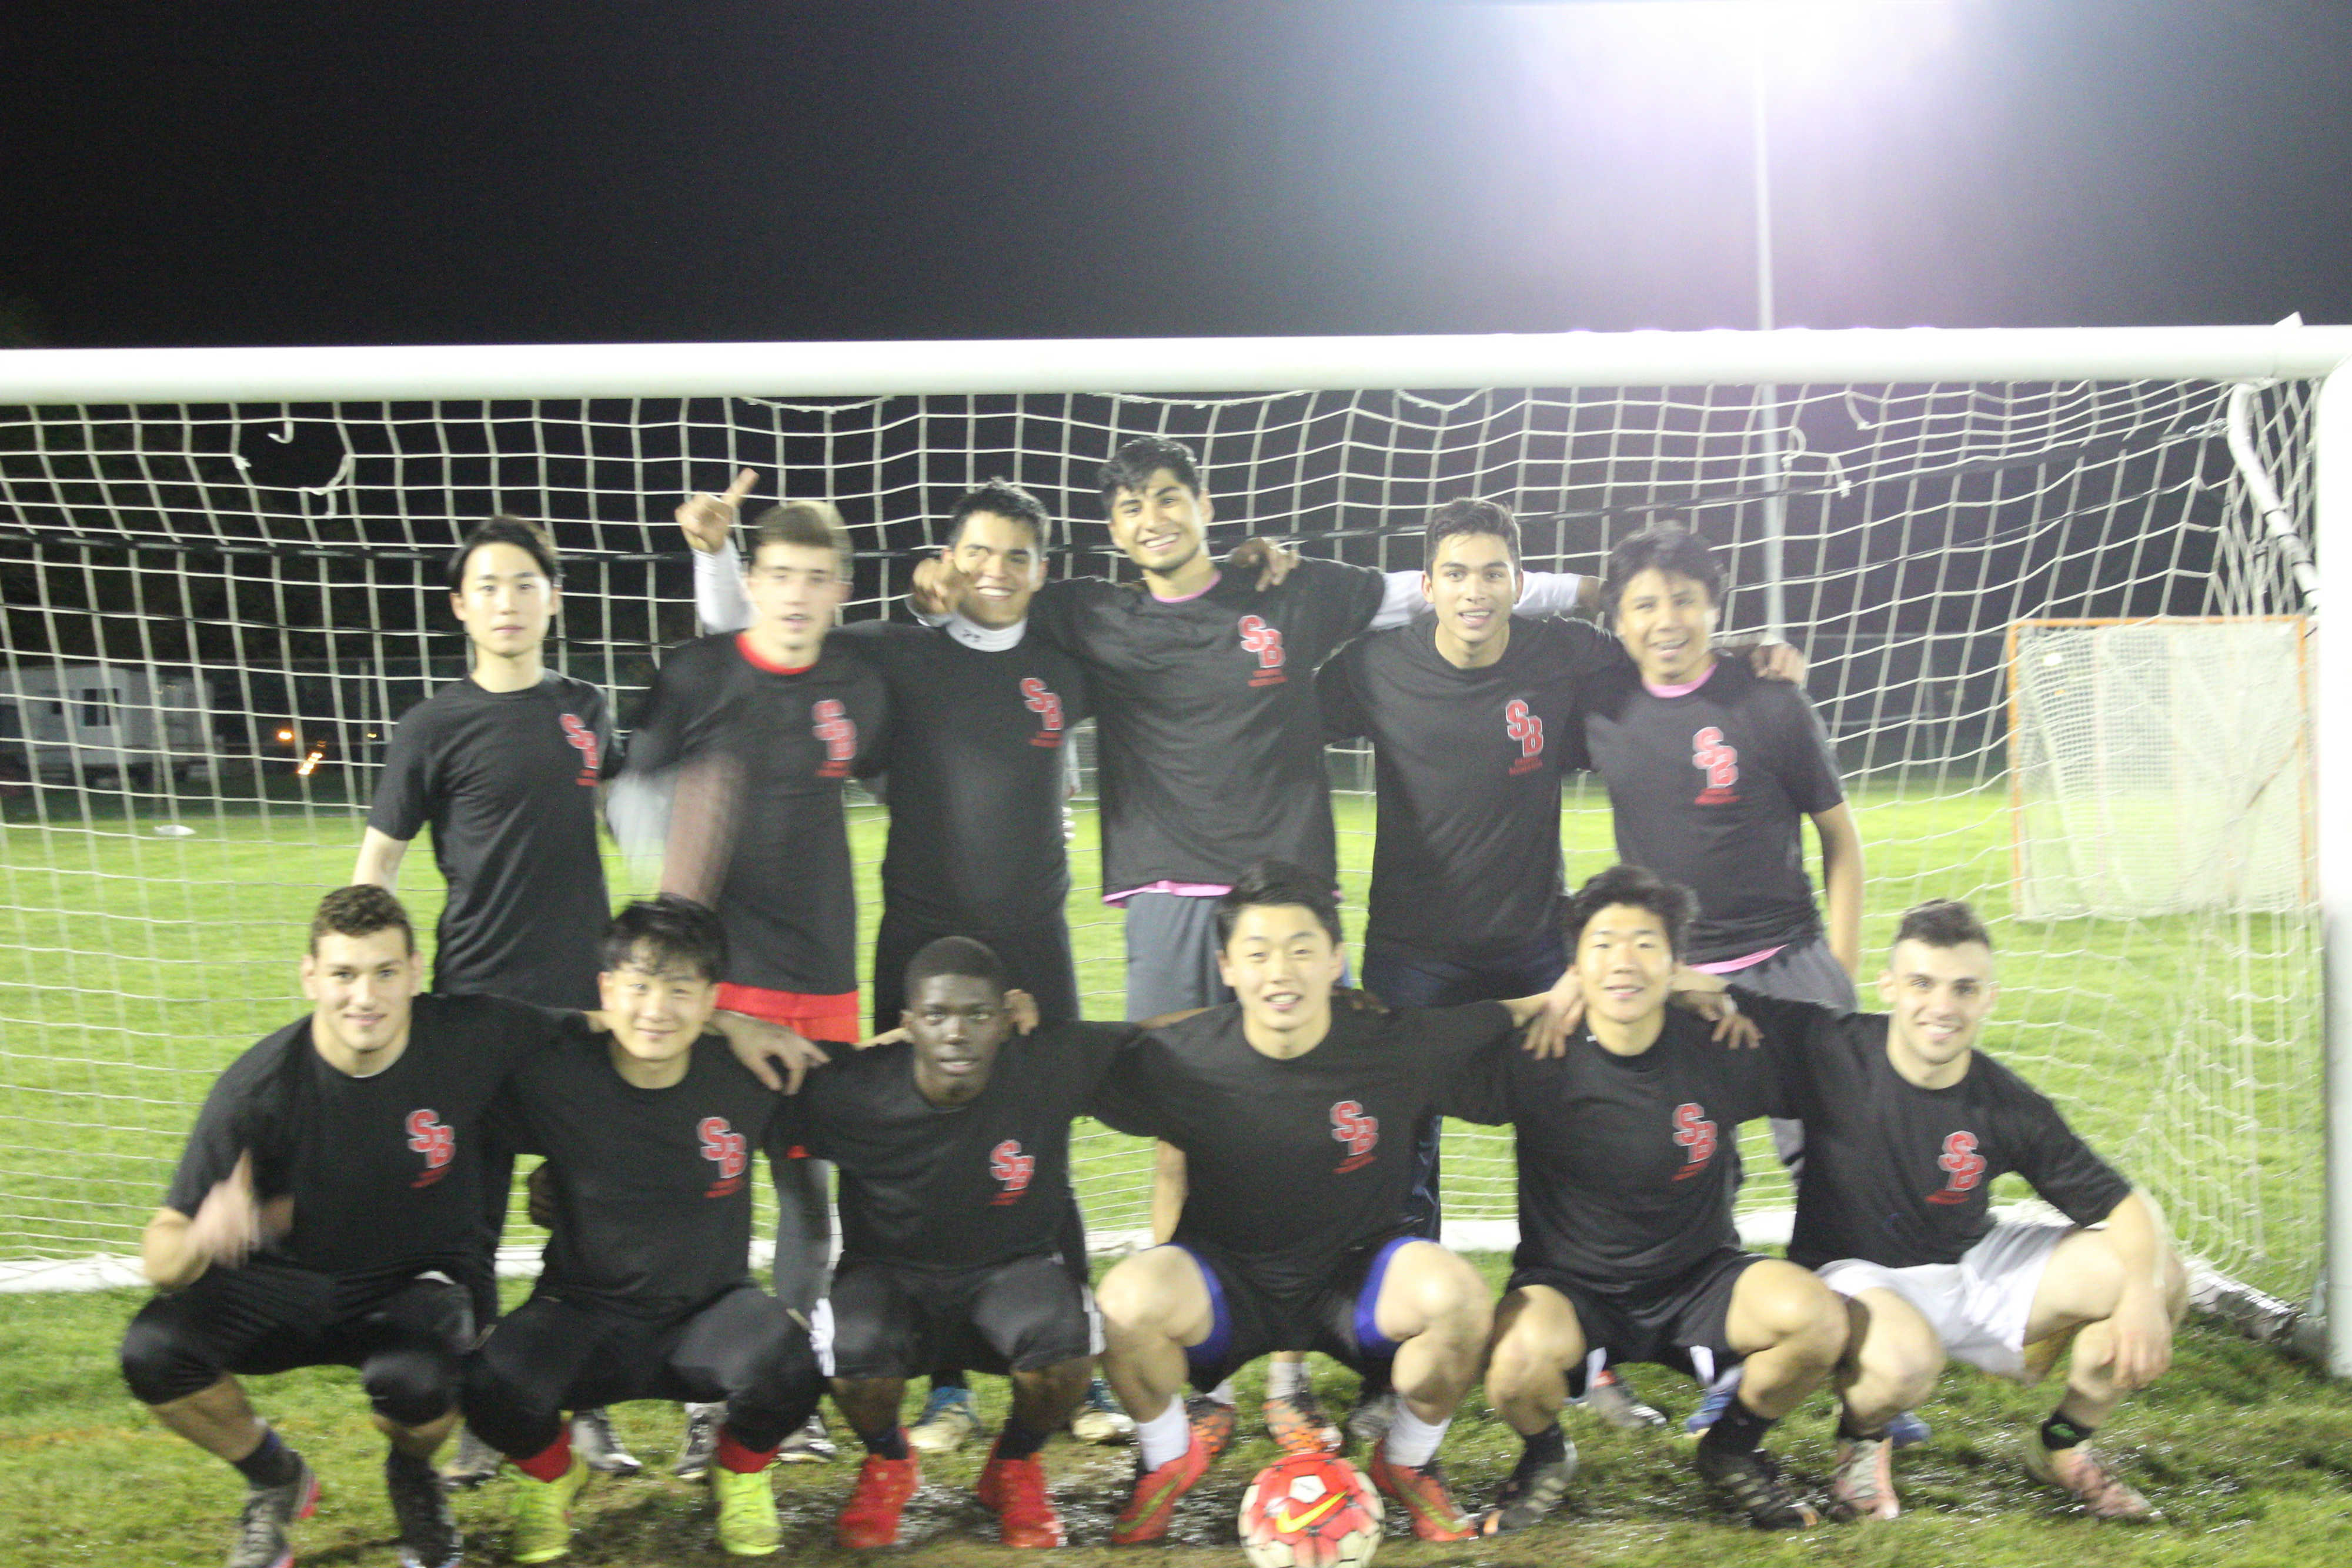 Armando Carries Us: Open Competitive Outdoor Soccer Champions